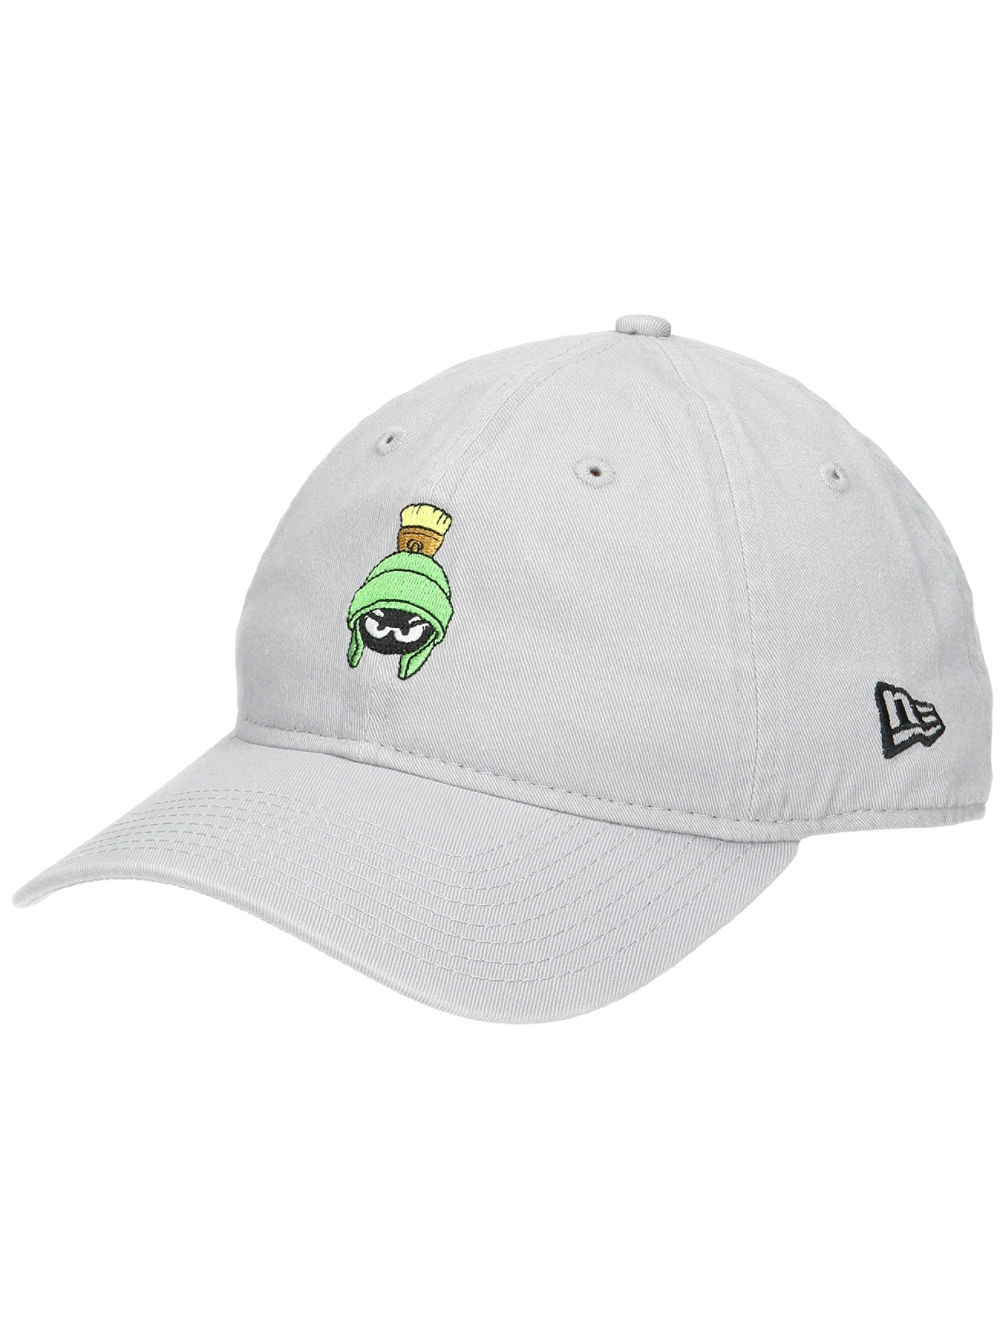 Buy New Era Looney Tunes 940 Unstructured Cap online at blue-tomato.com 9d4a904b2fd